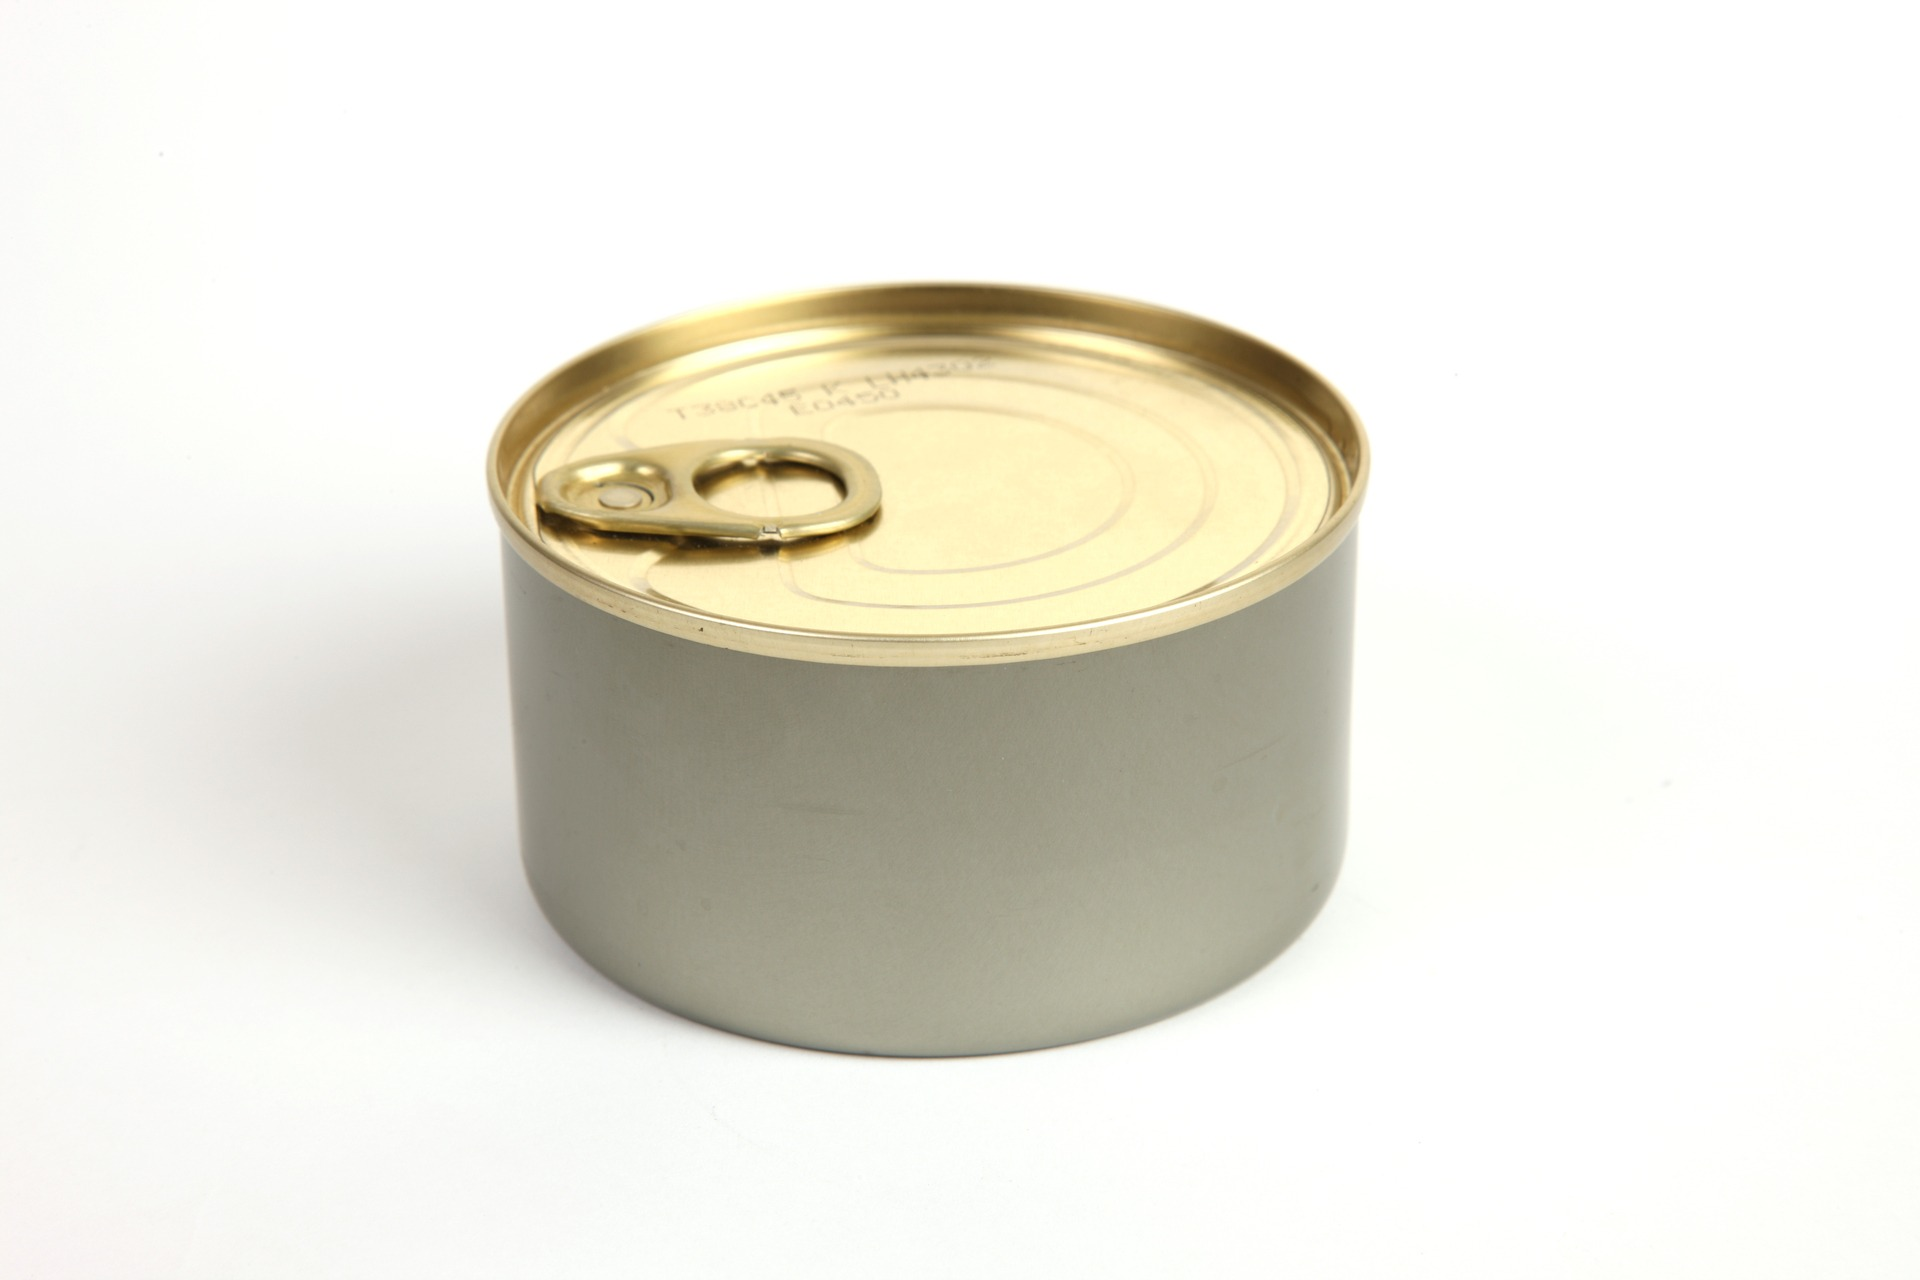 isolated-tuna-can-1320767-1920×1280